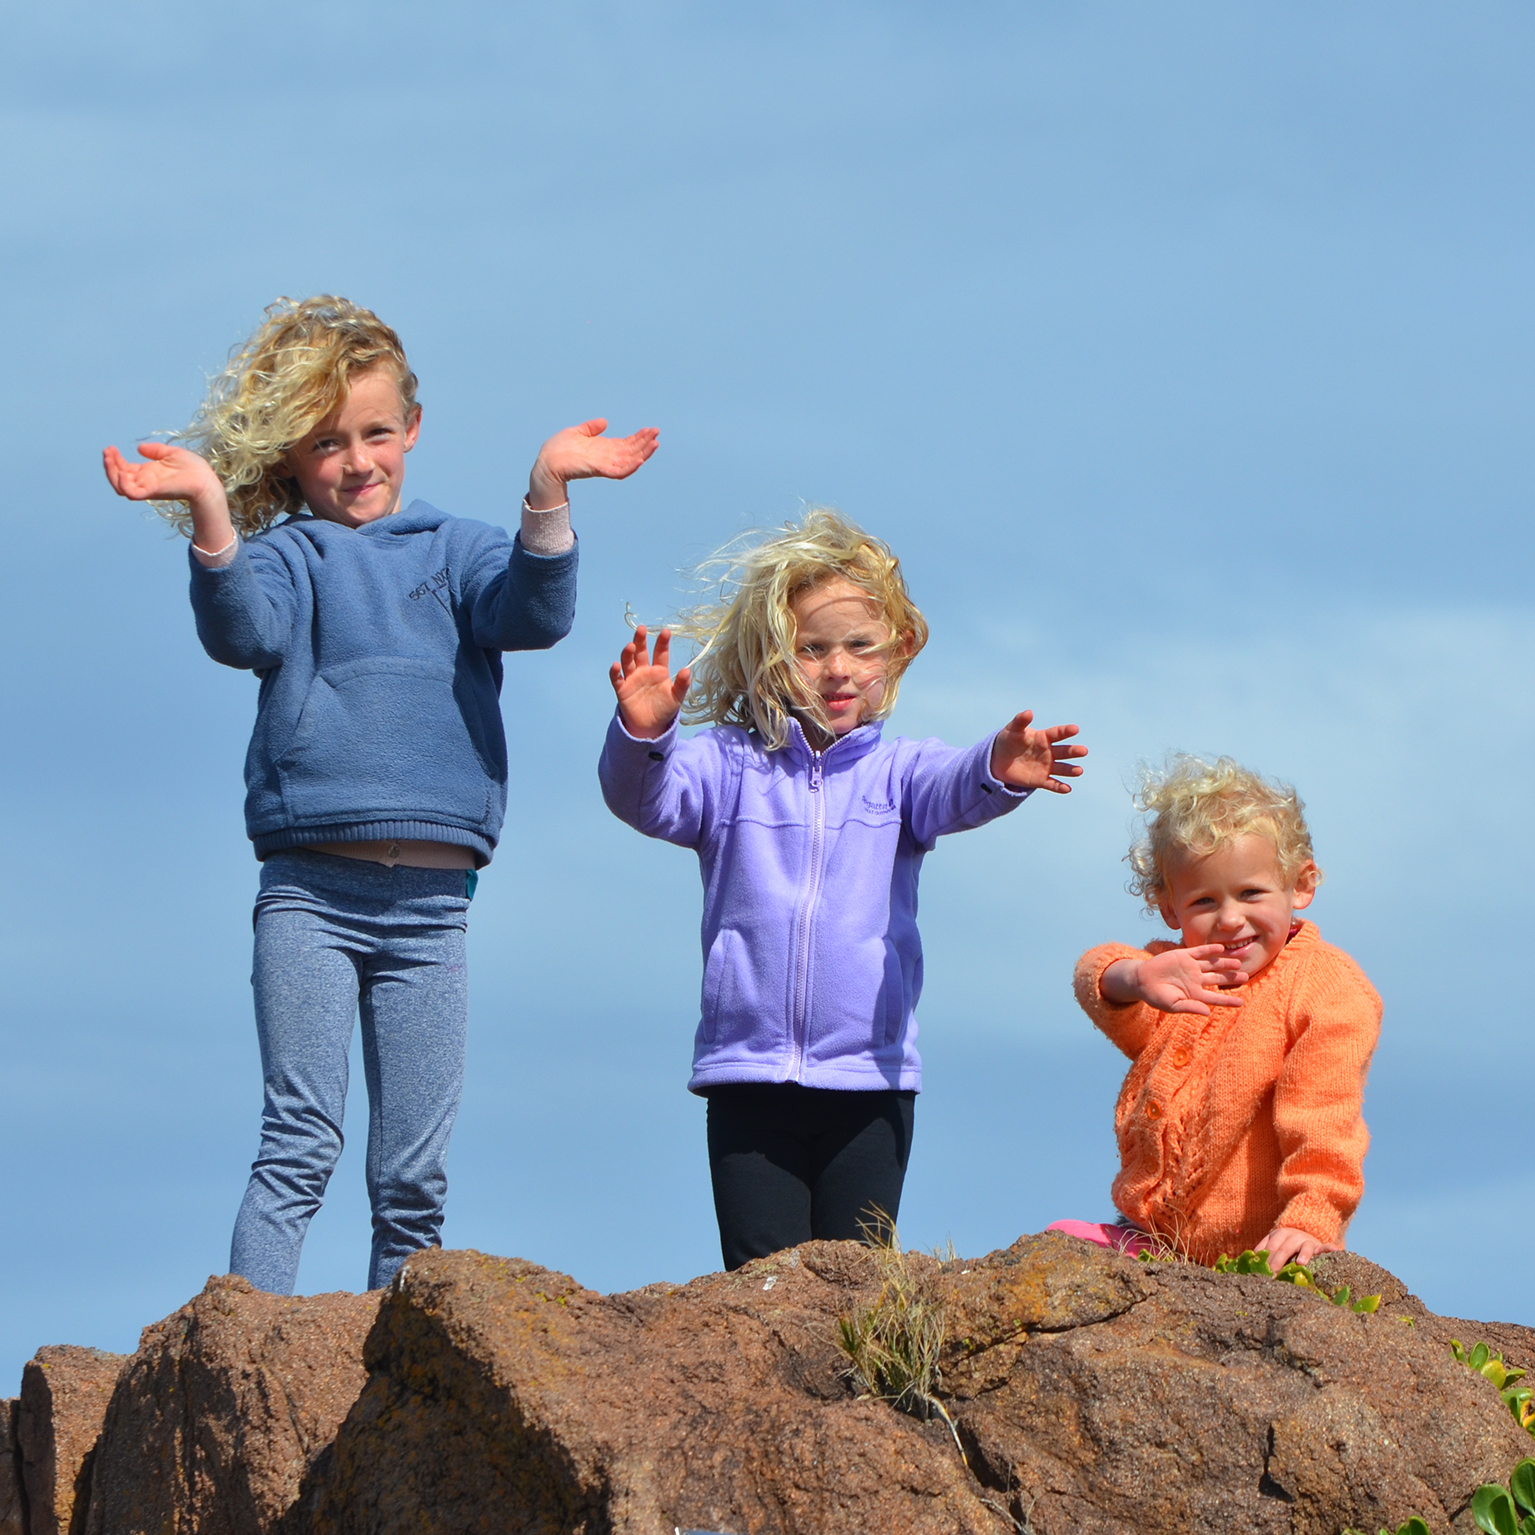 Canva - 3 Kids Standing on Rock